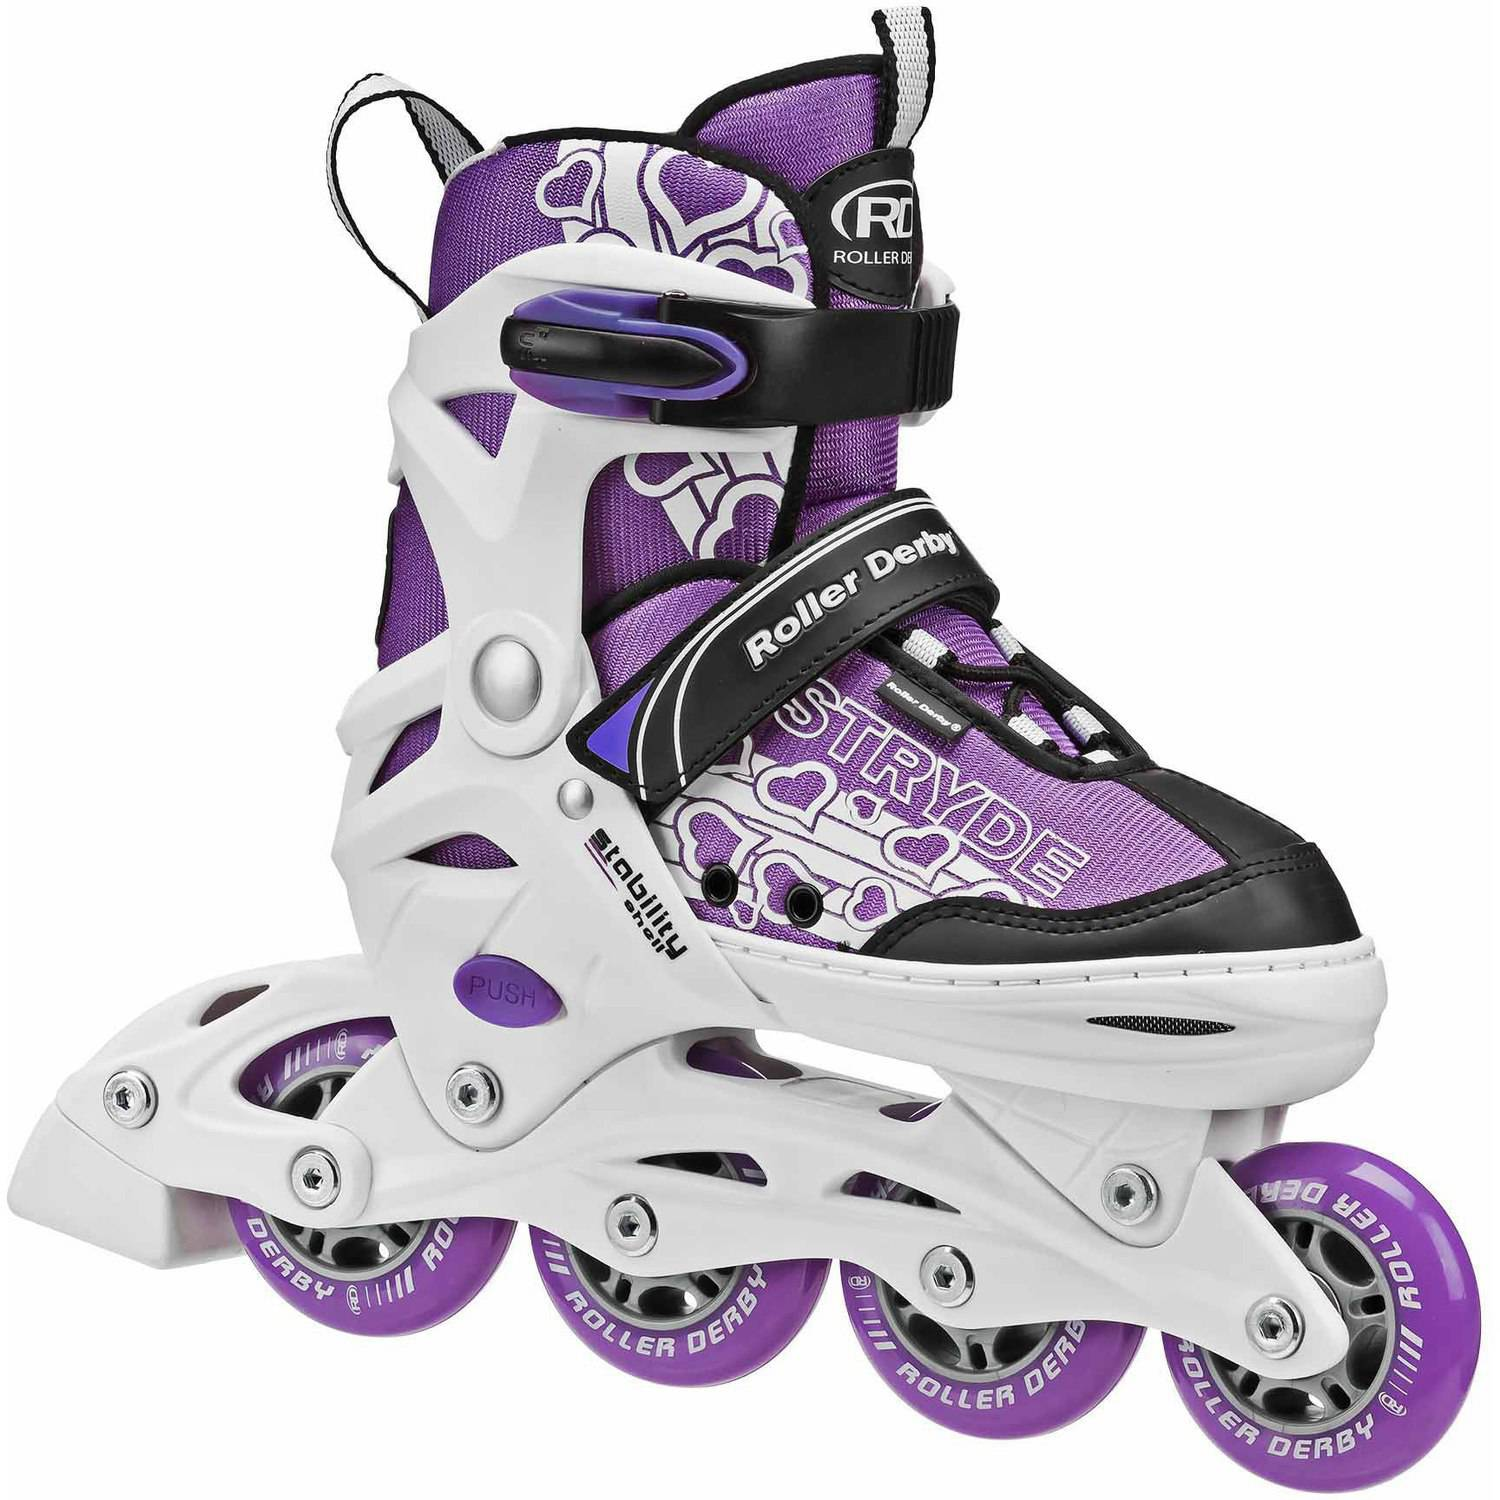 Stryde Girls' Adjustable Inline Skates, Purple/White